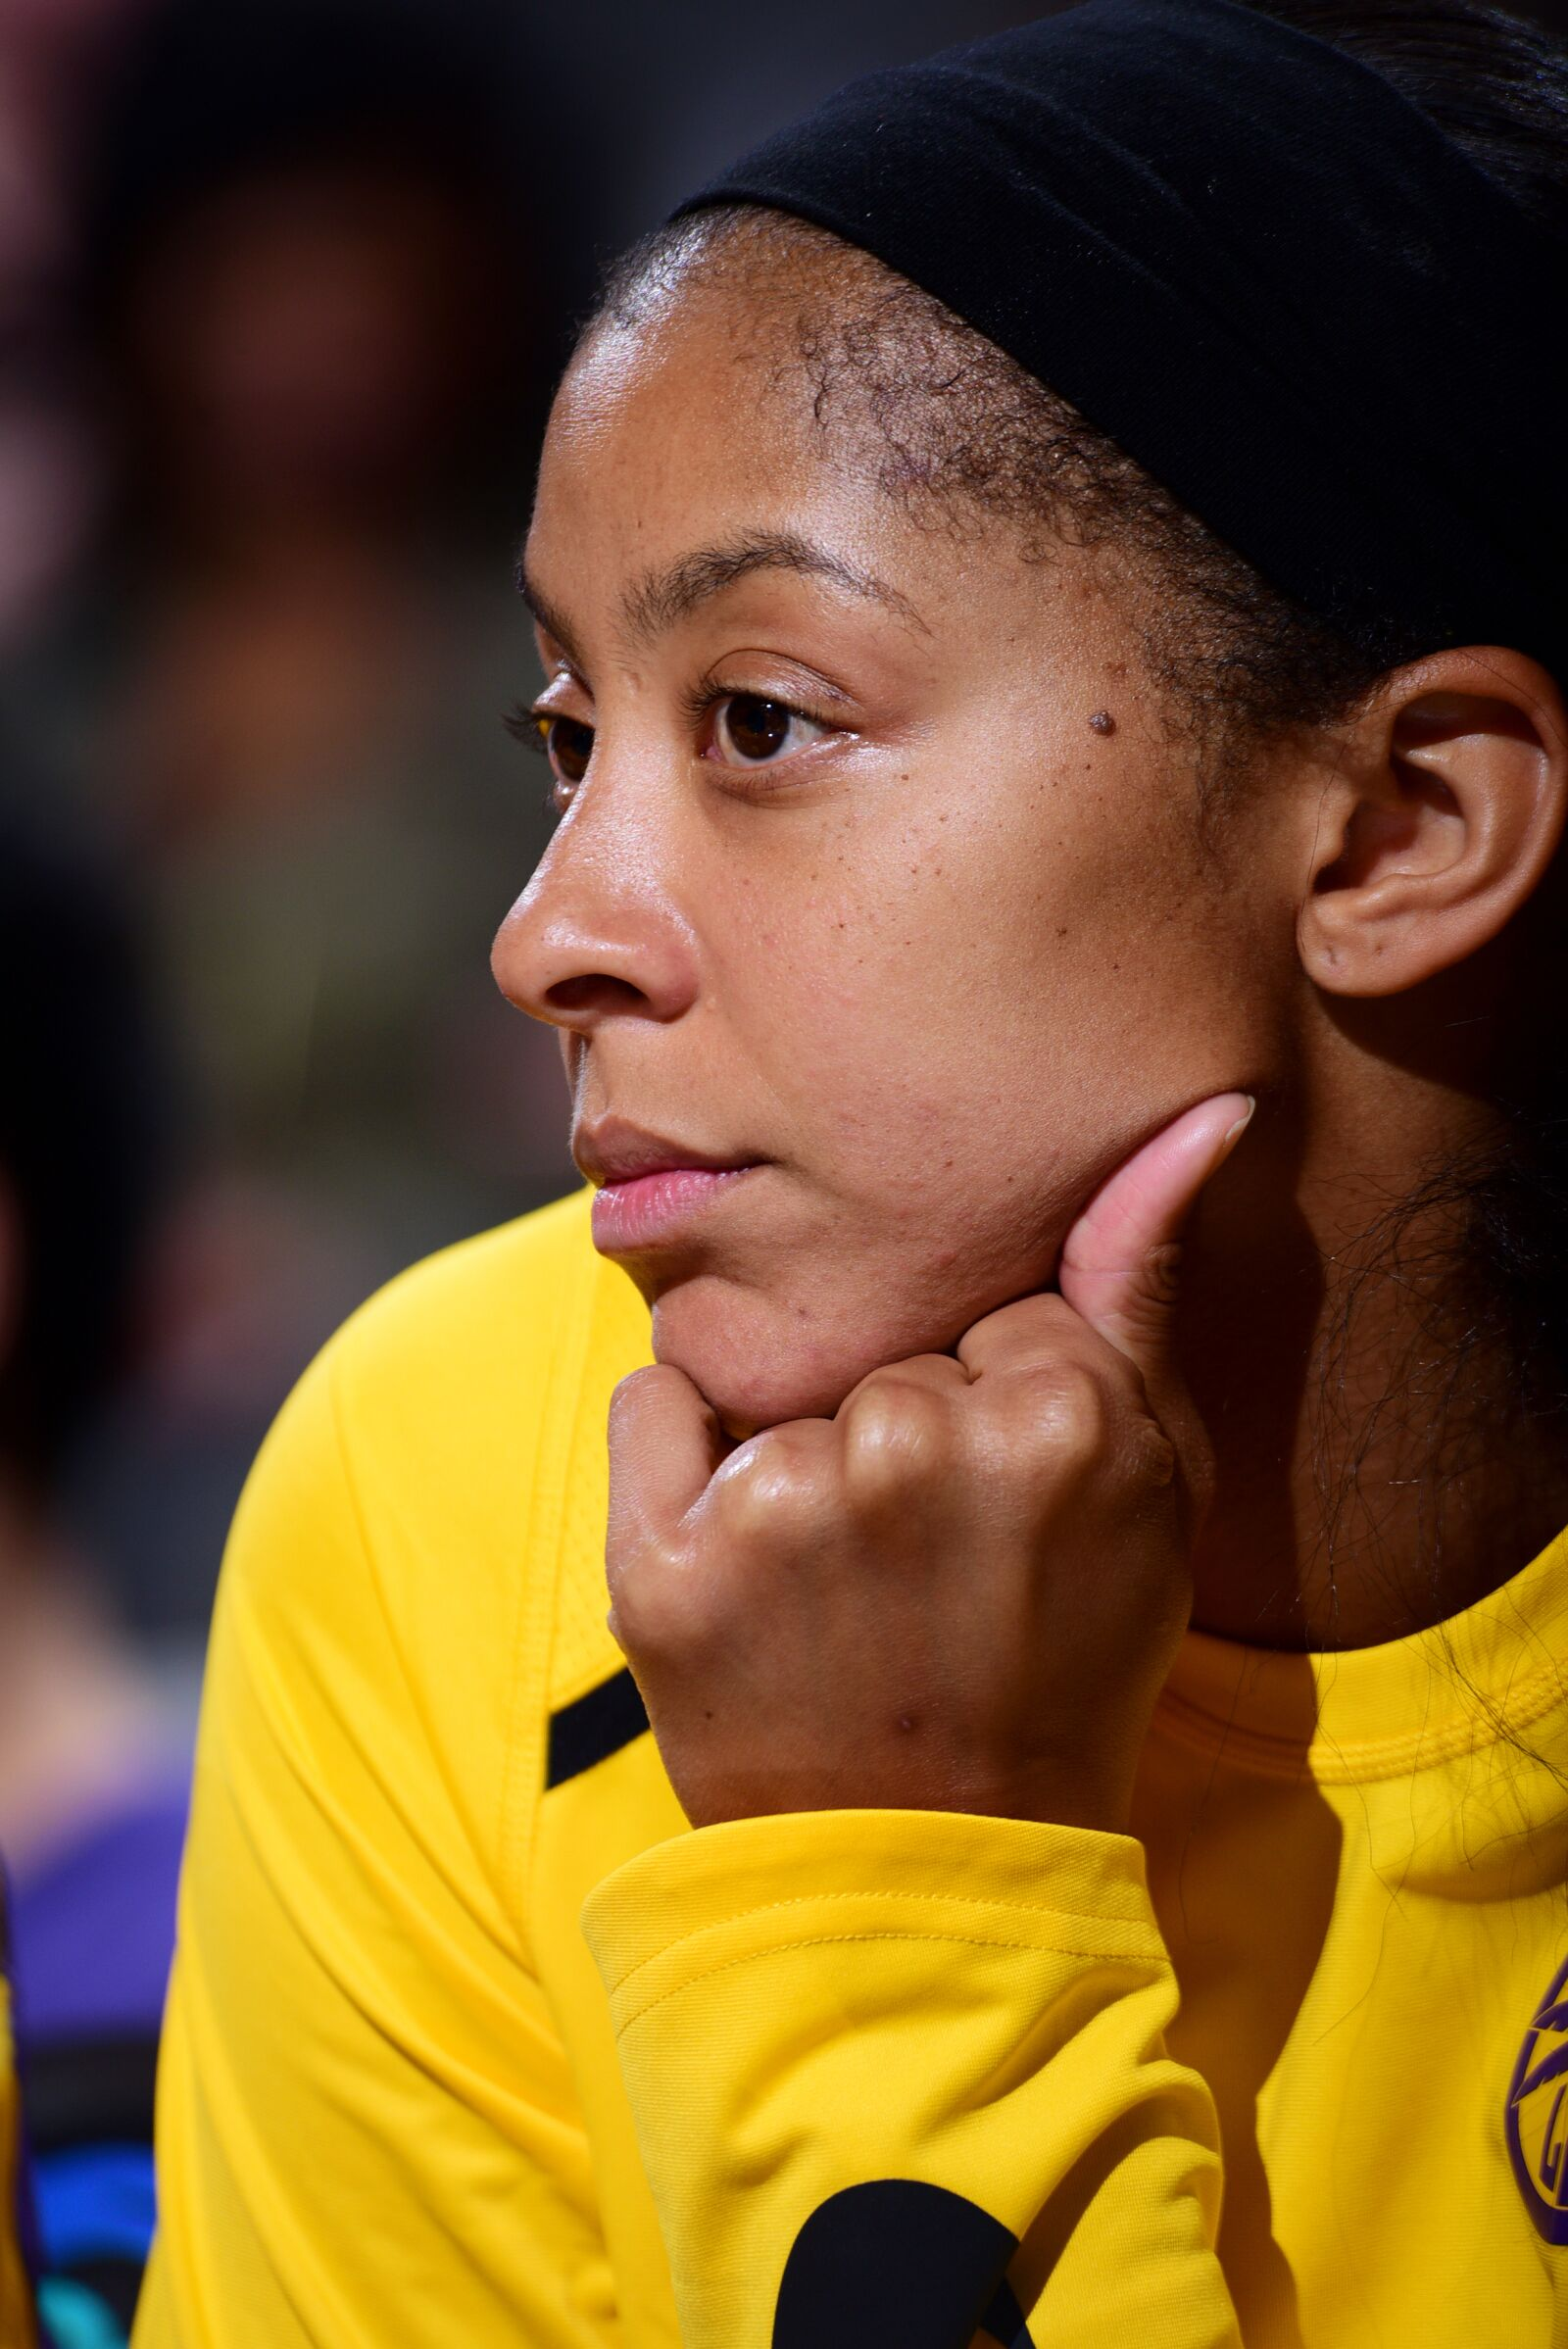 Los Angeles Sparks to be without Candace Parker for 3-5 weeks